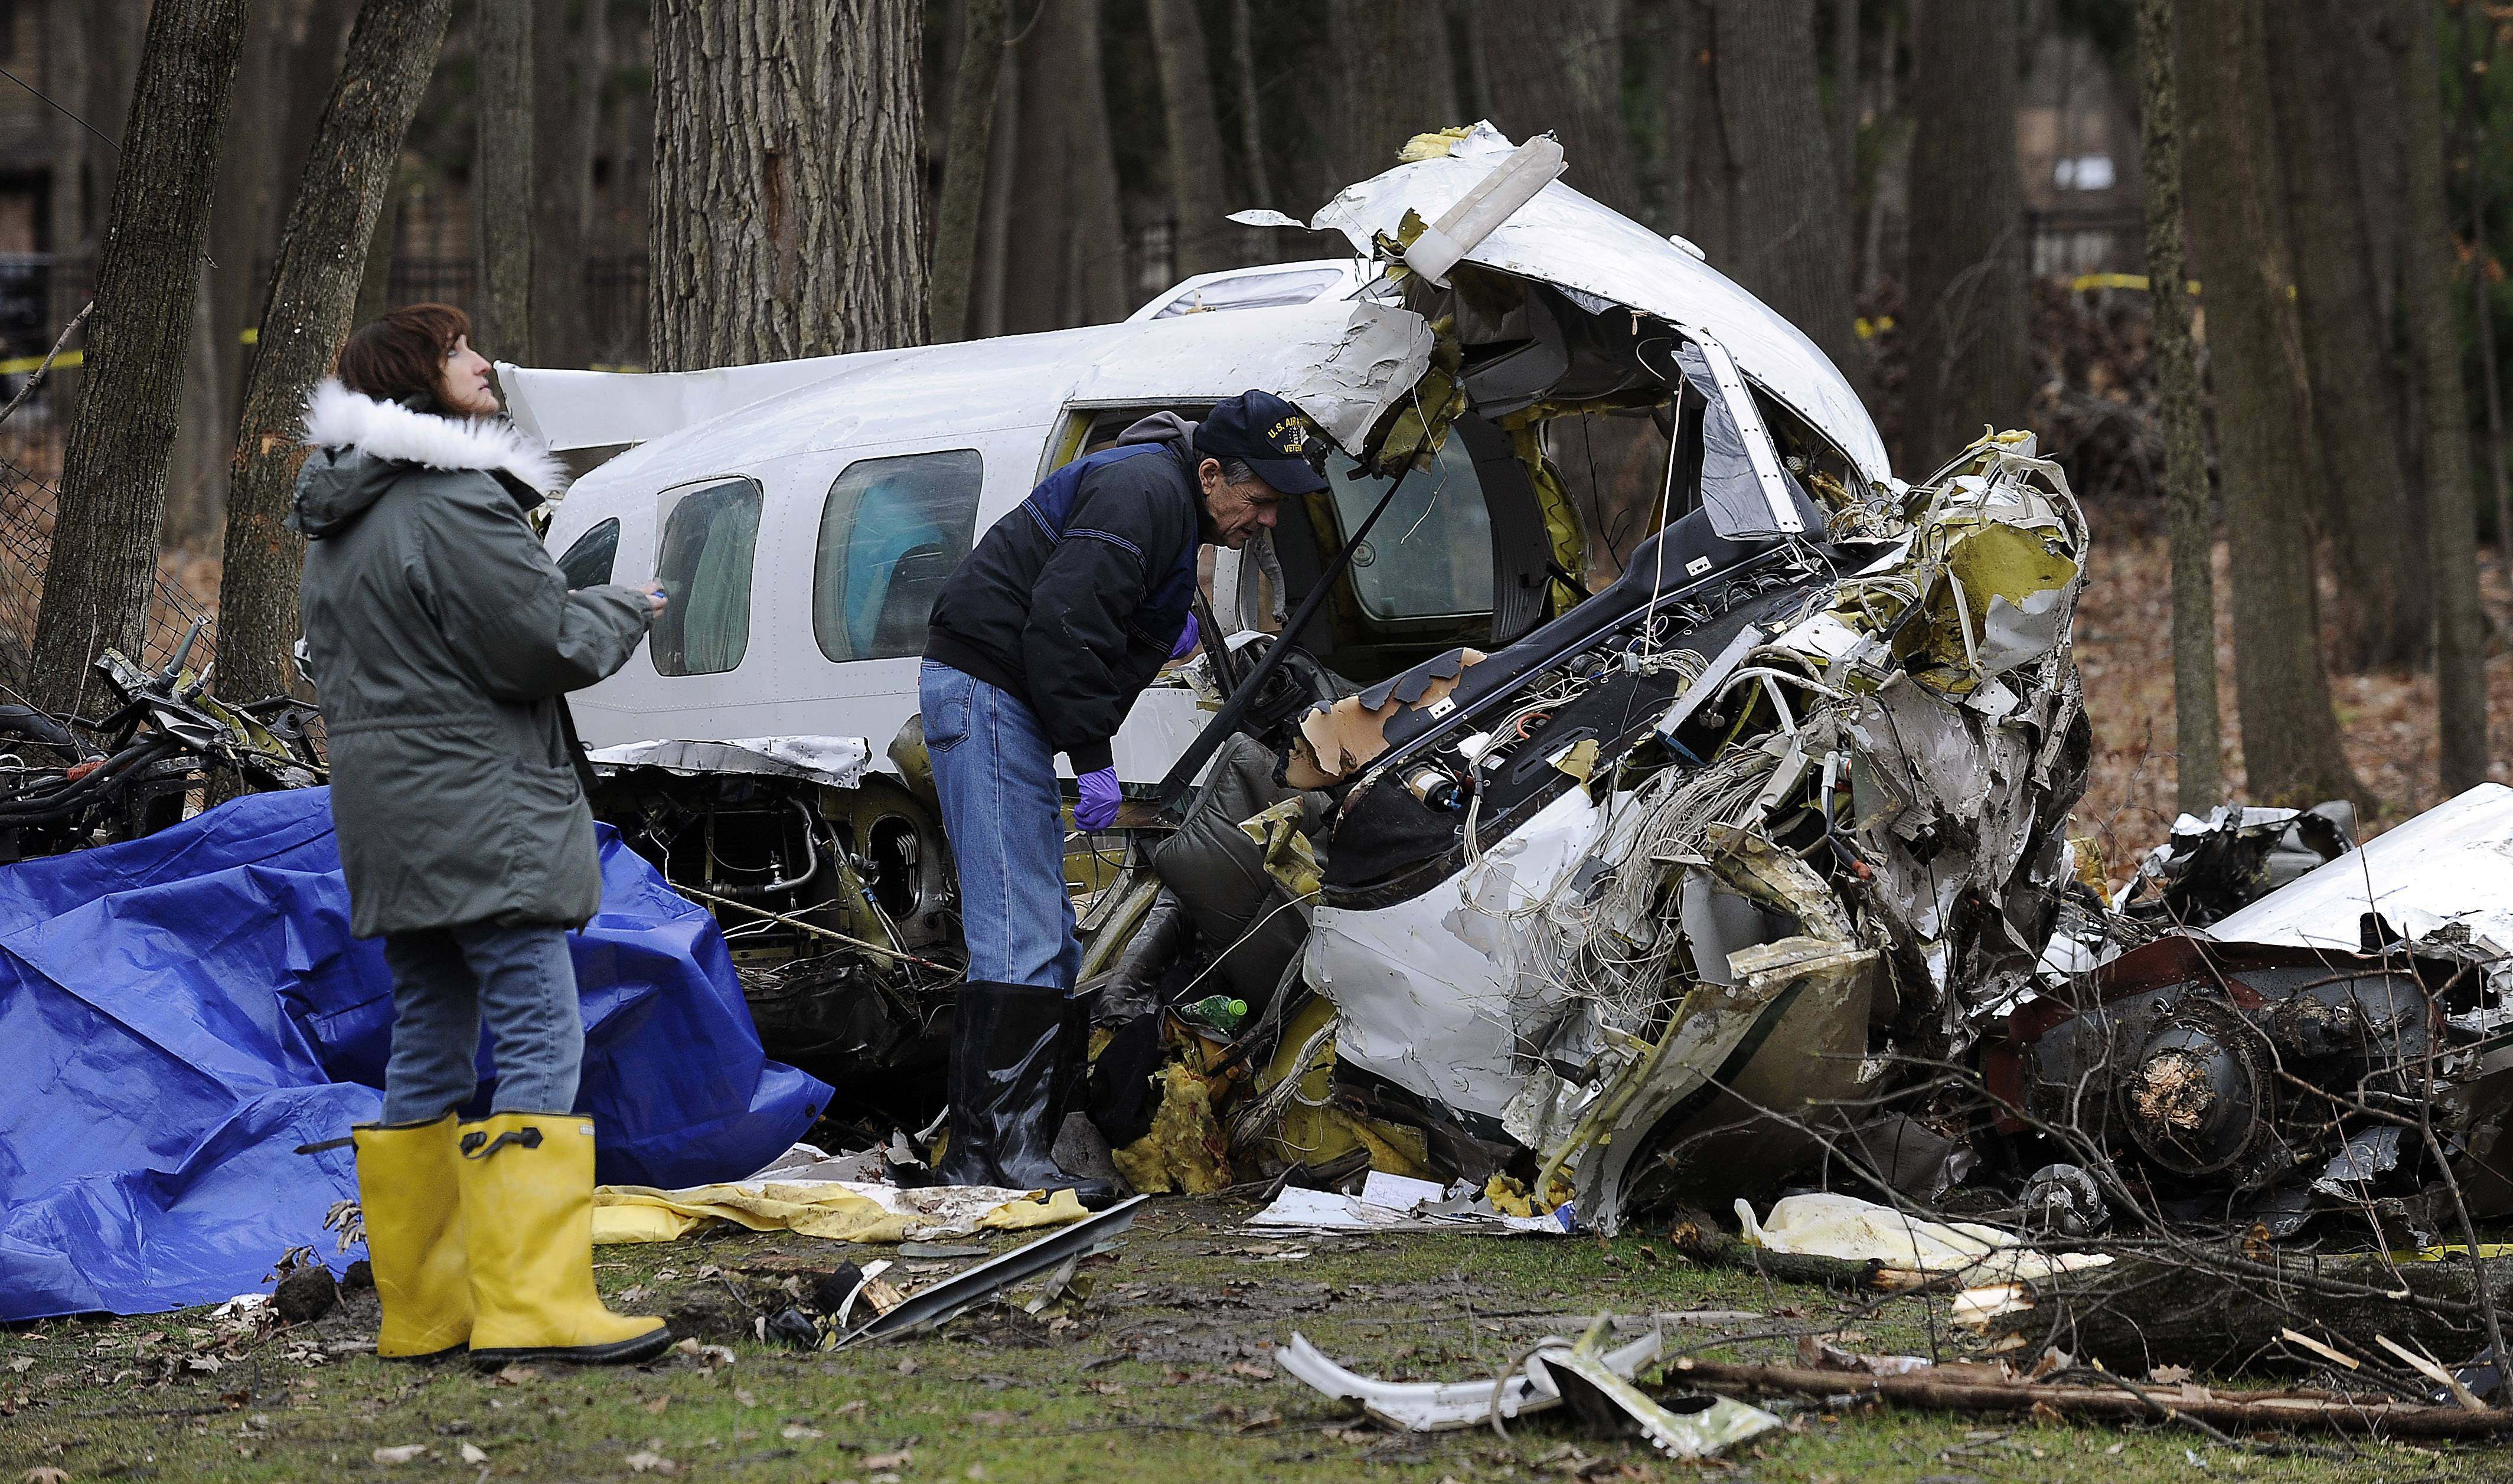 Investigators sift through debris Tuesday after a small plane crashed late Monday night in Riverwoods.